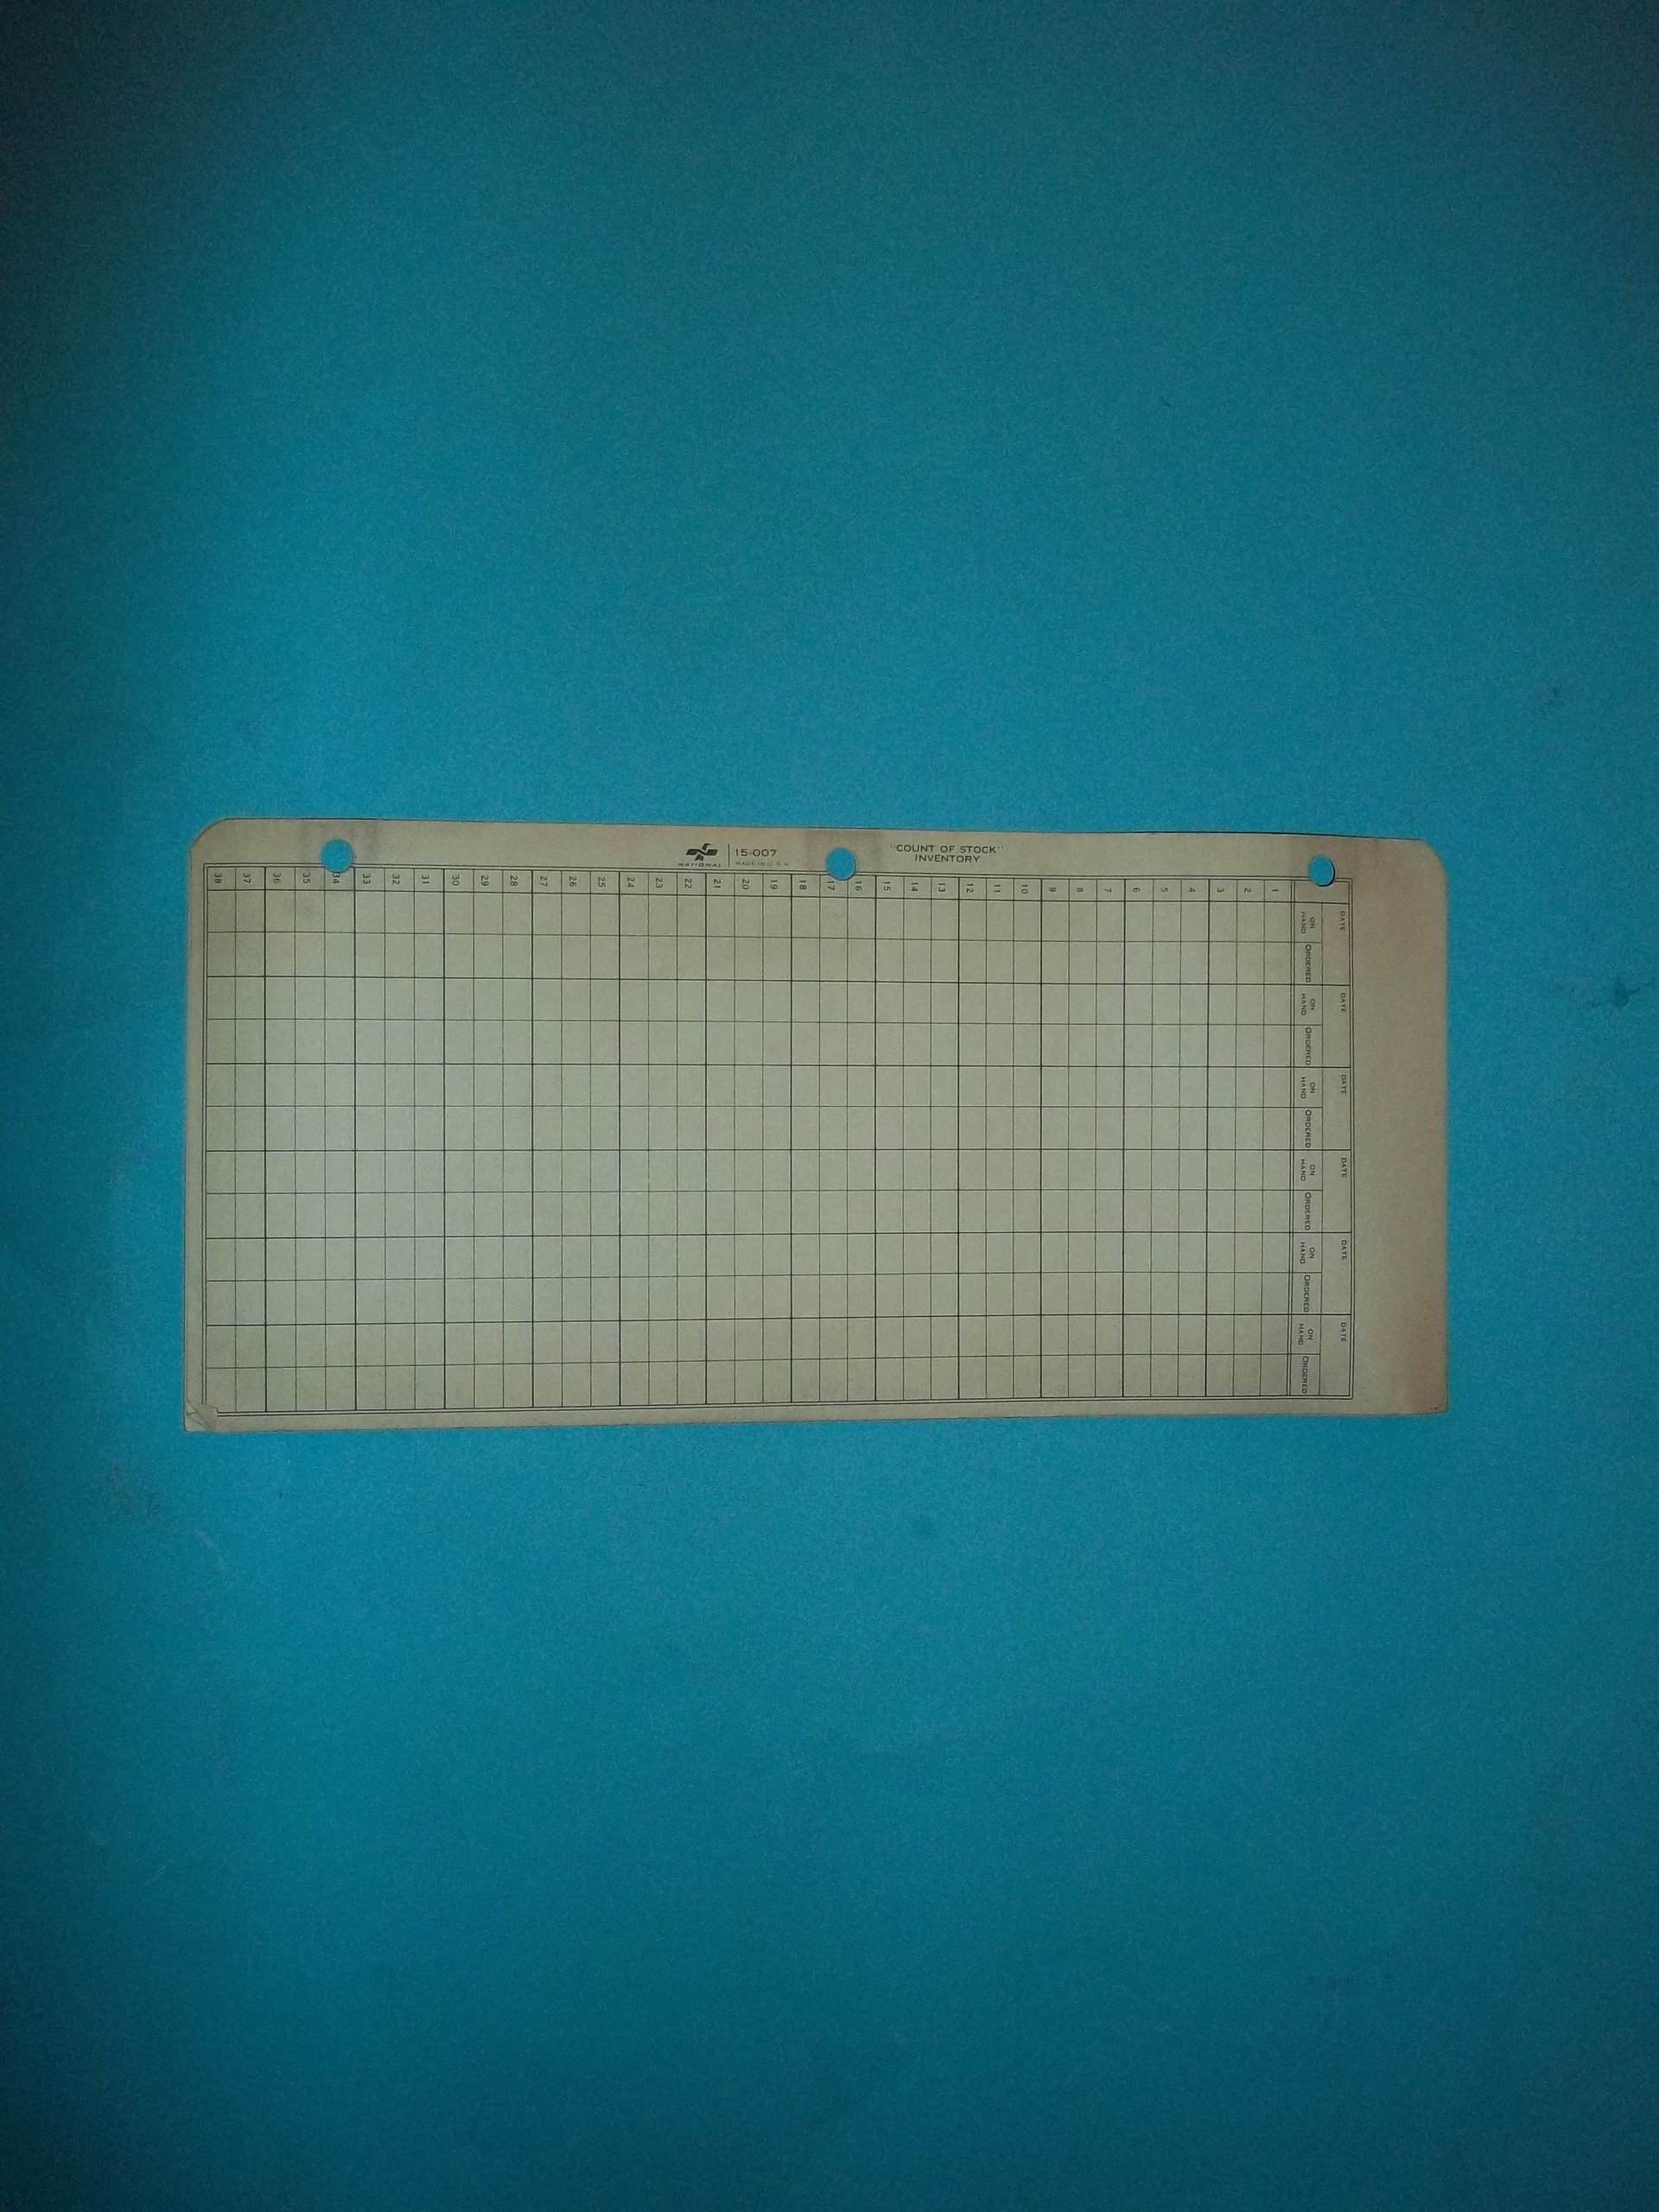 National 15-007 Count of Stock Inventory Sold in Bulk Packages of 12 Sheets